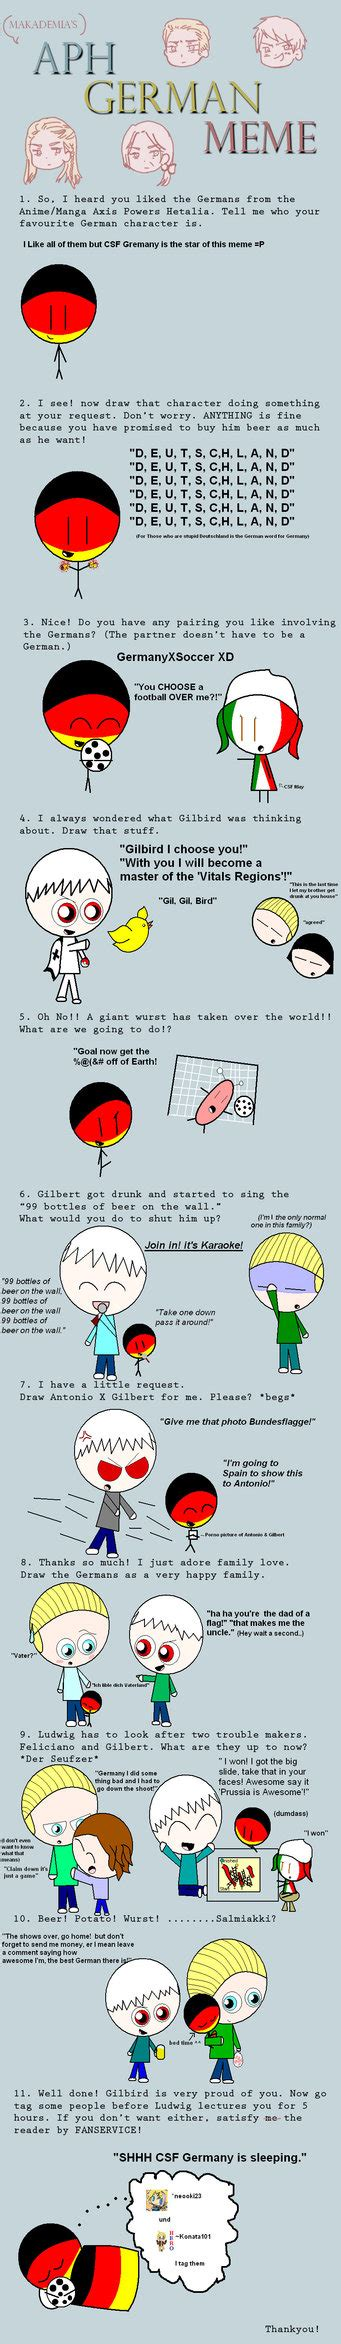 German Butterfly Meme - csf and aph german meme by abthebutterfly on deviantart